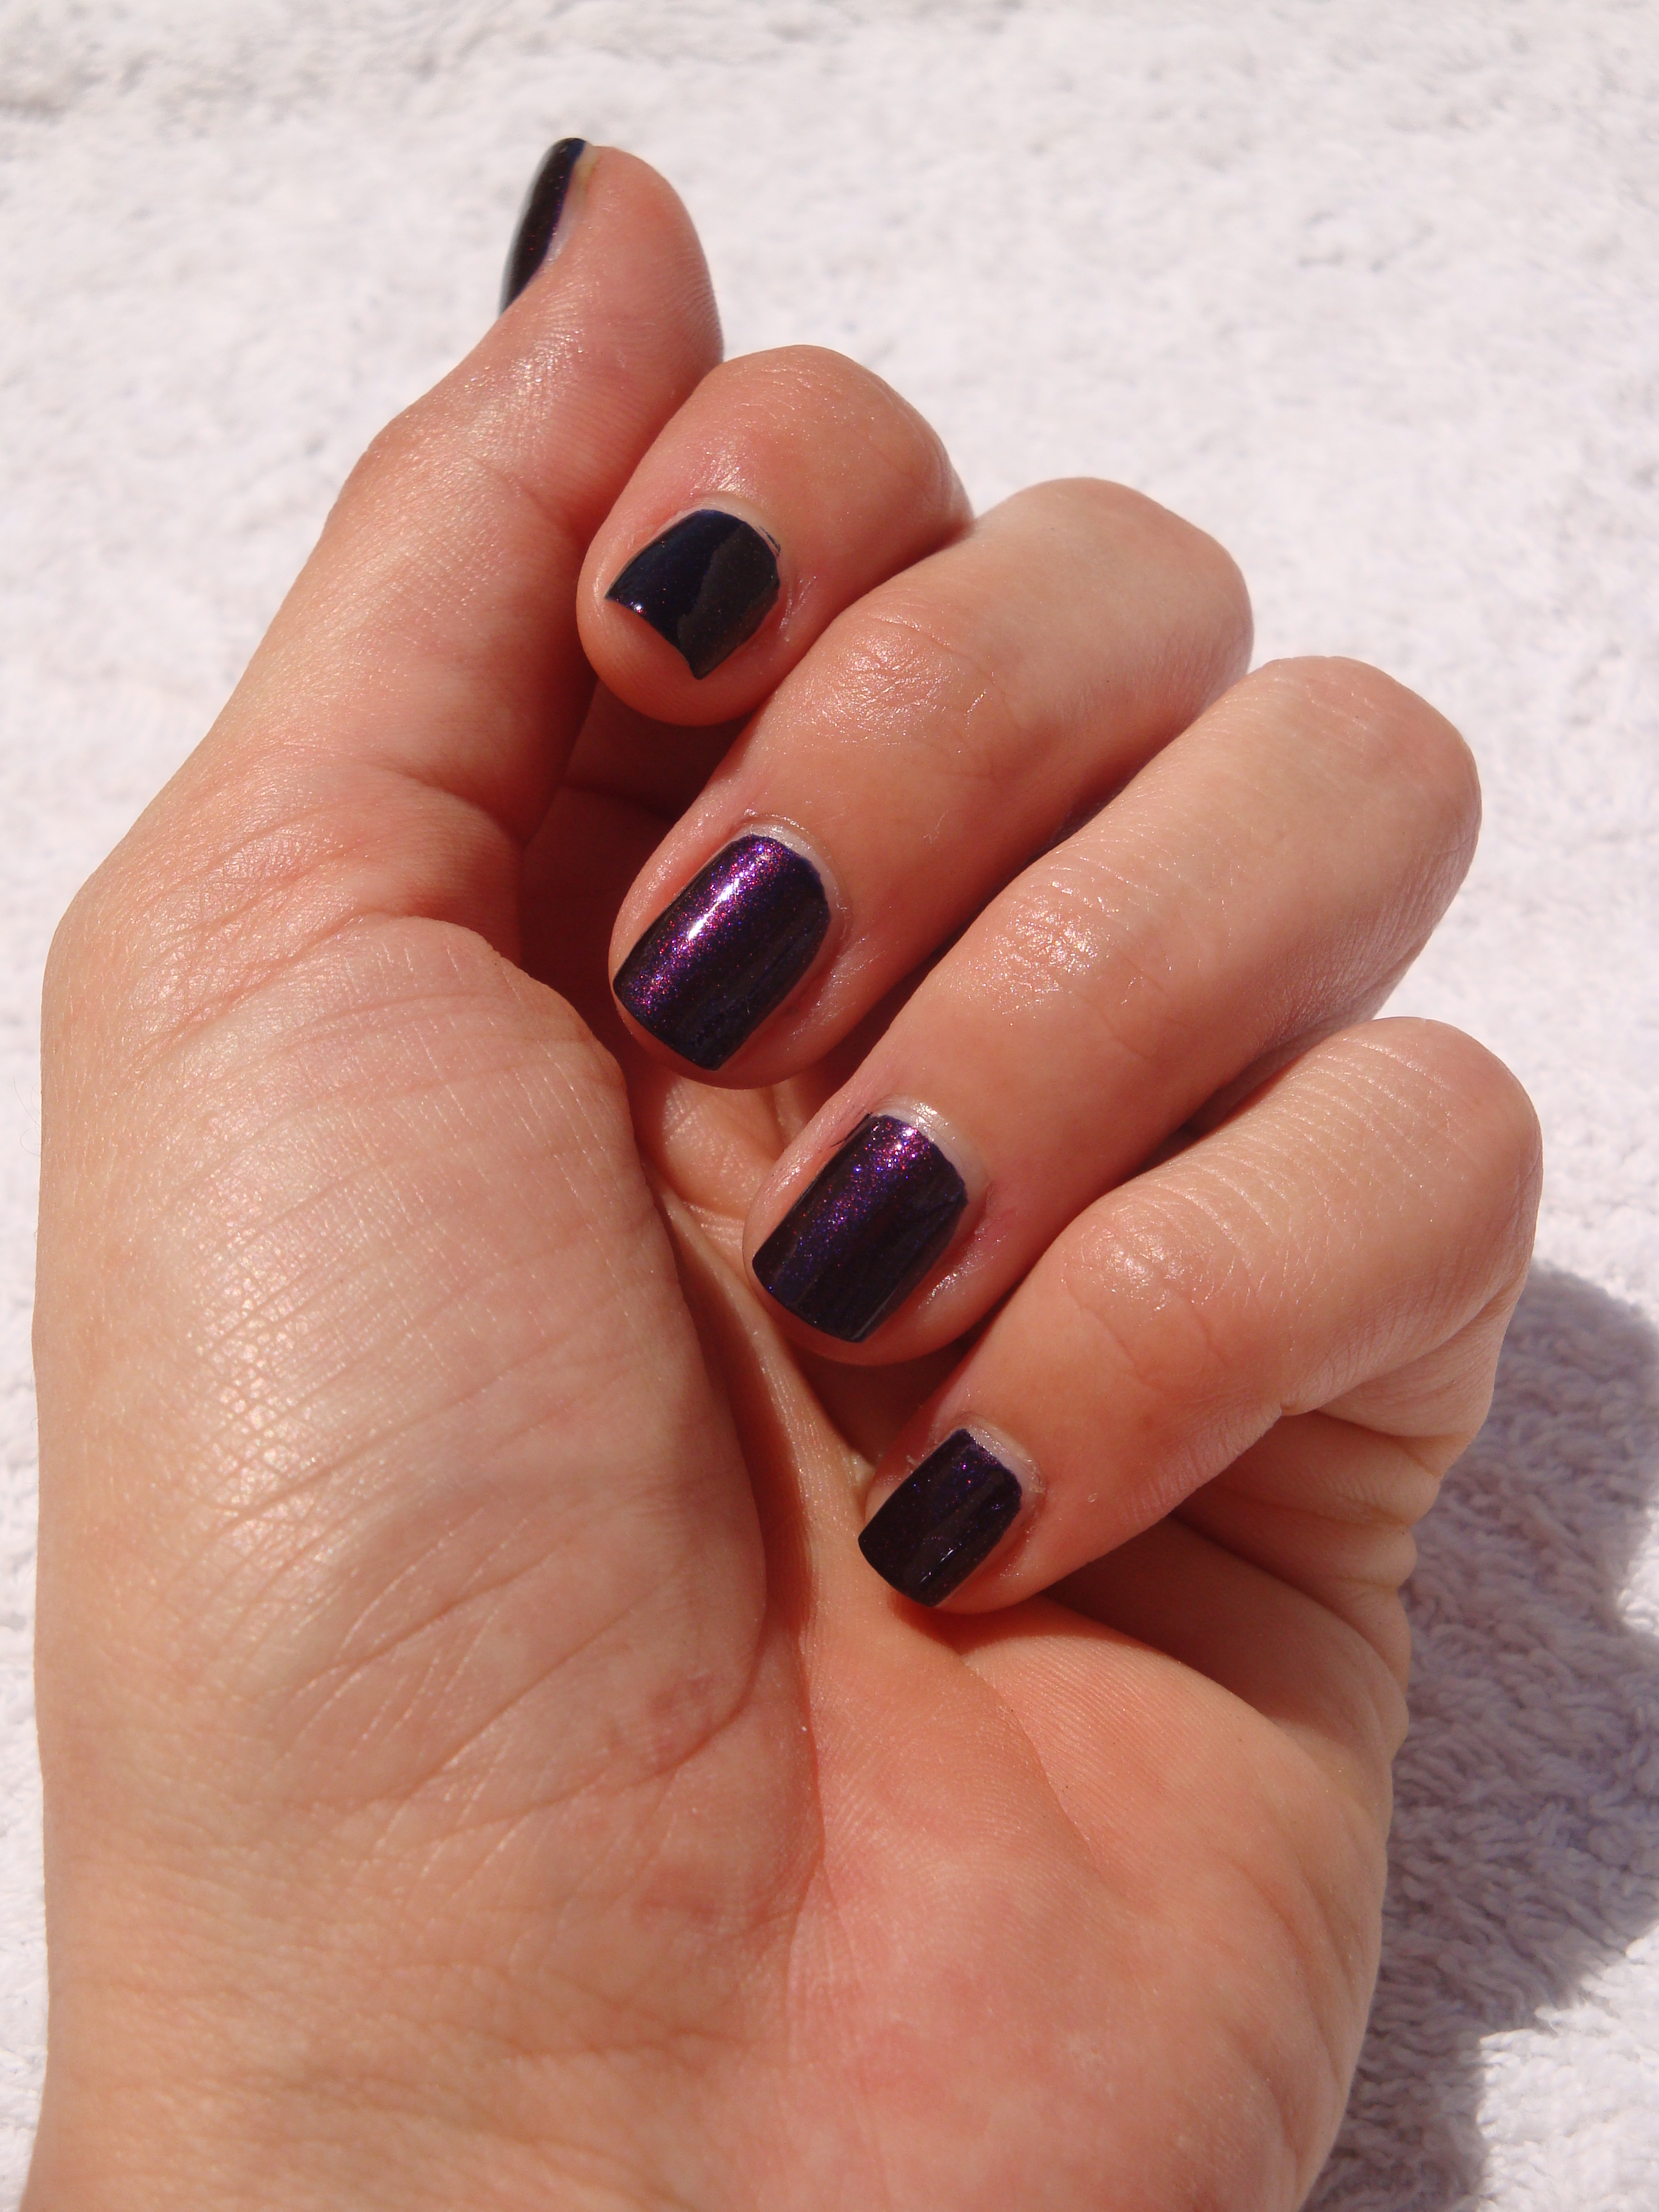 Chanel le vernis #583 Taboo swatch